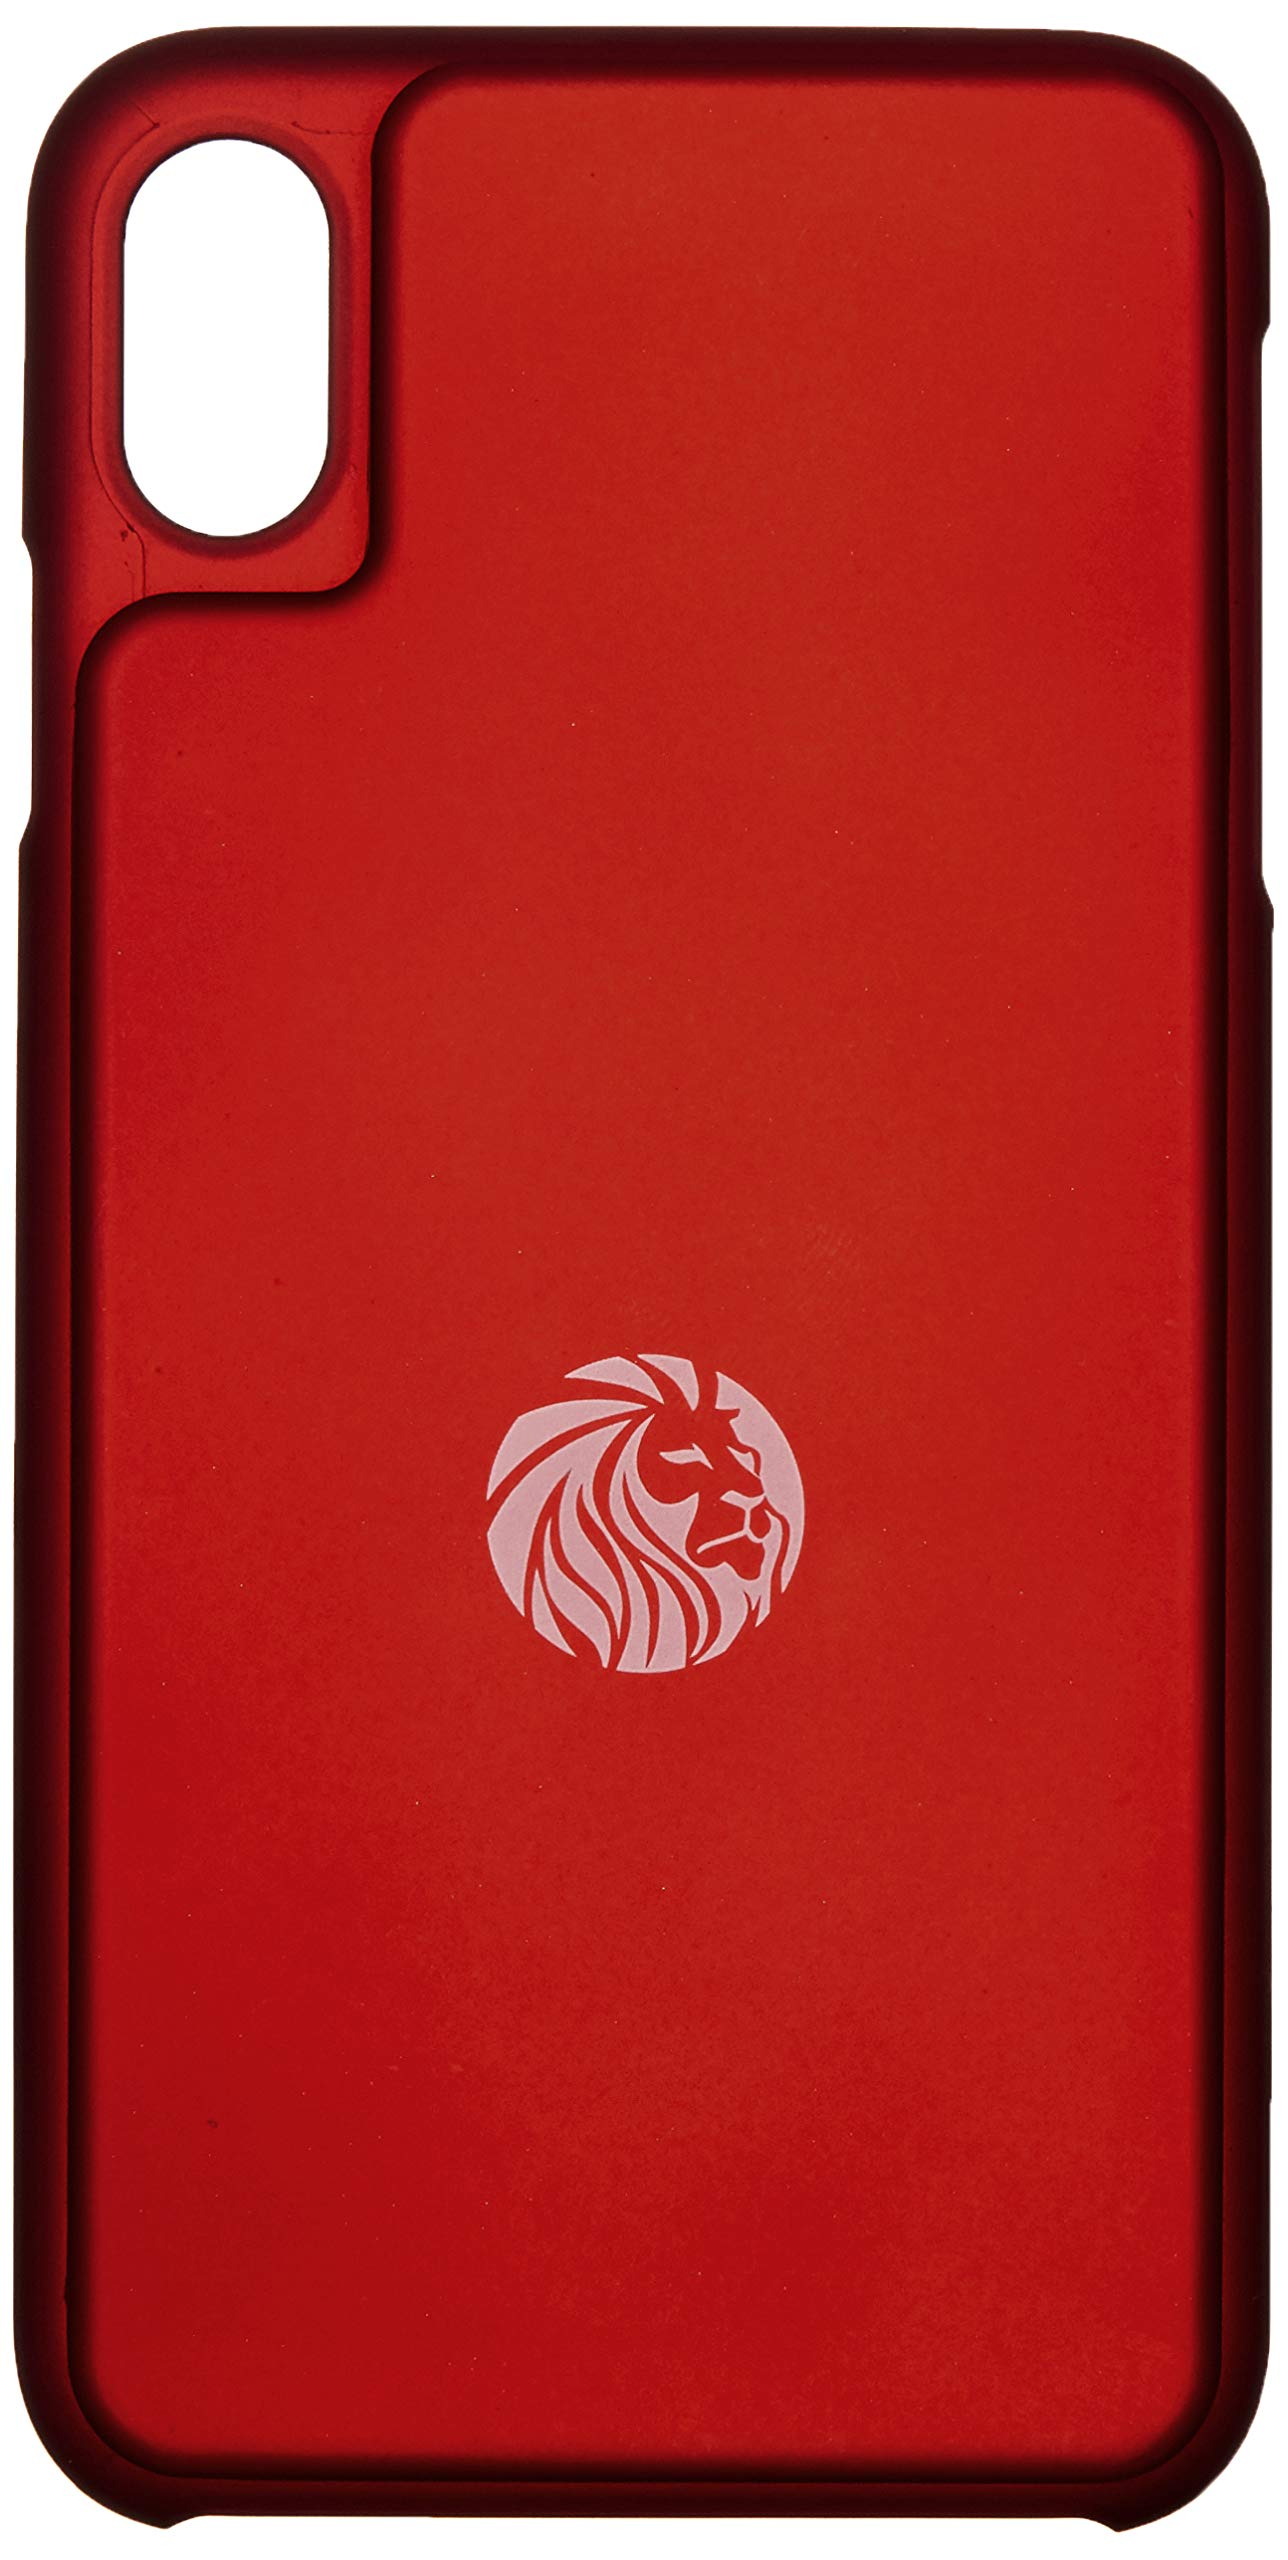 Lioned Fitcase red for iPhone Xs Max, Food Scale in an iPhone case, Rechargeable Battery by USB c Cable, Track Your macros Where You are, Even on The go, and Protect Your Smartphone